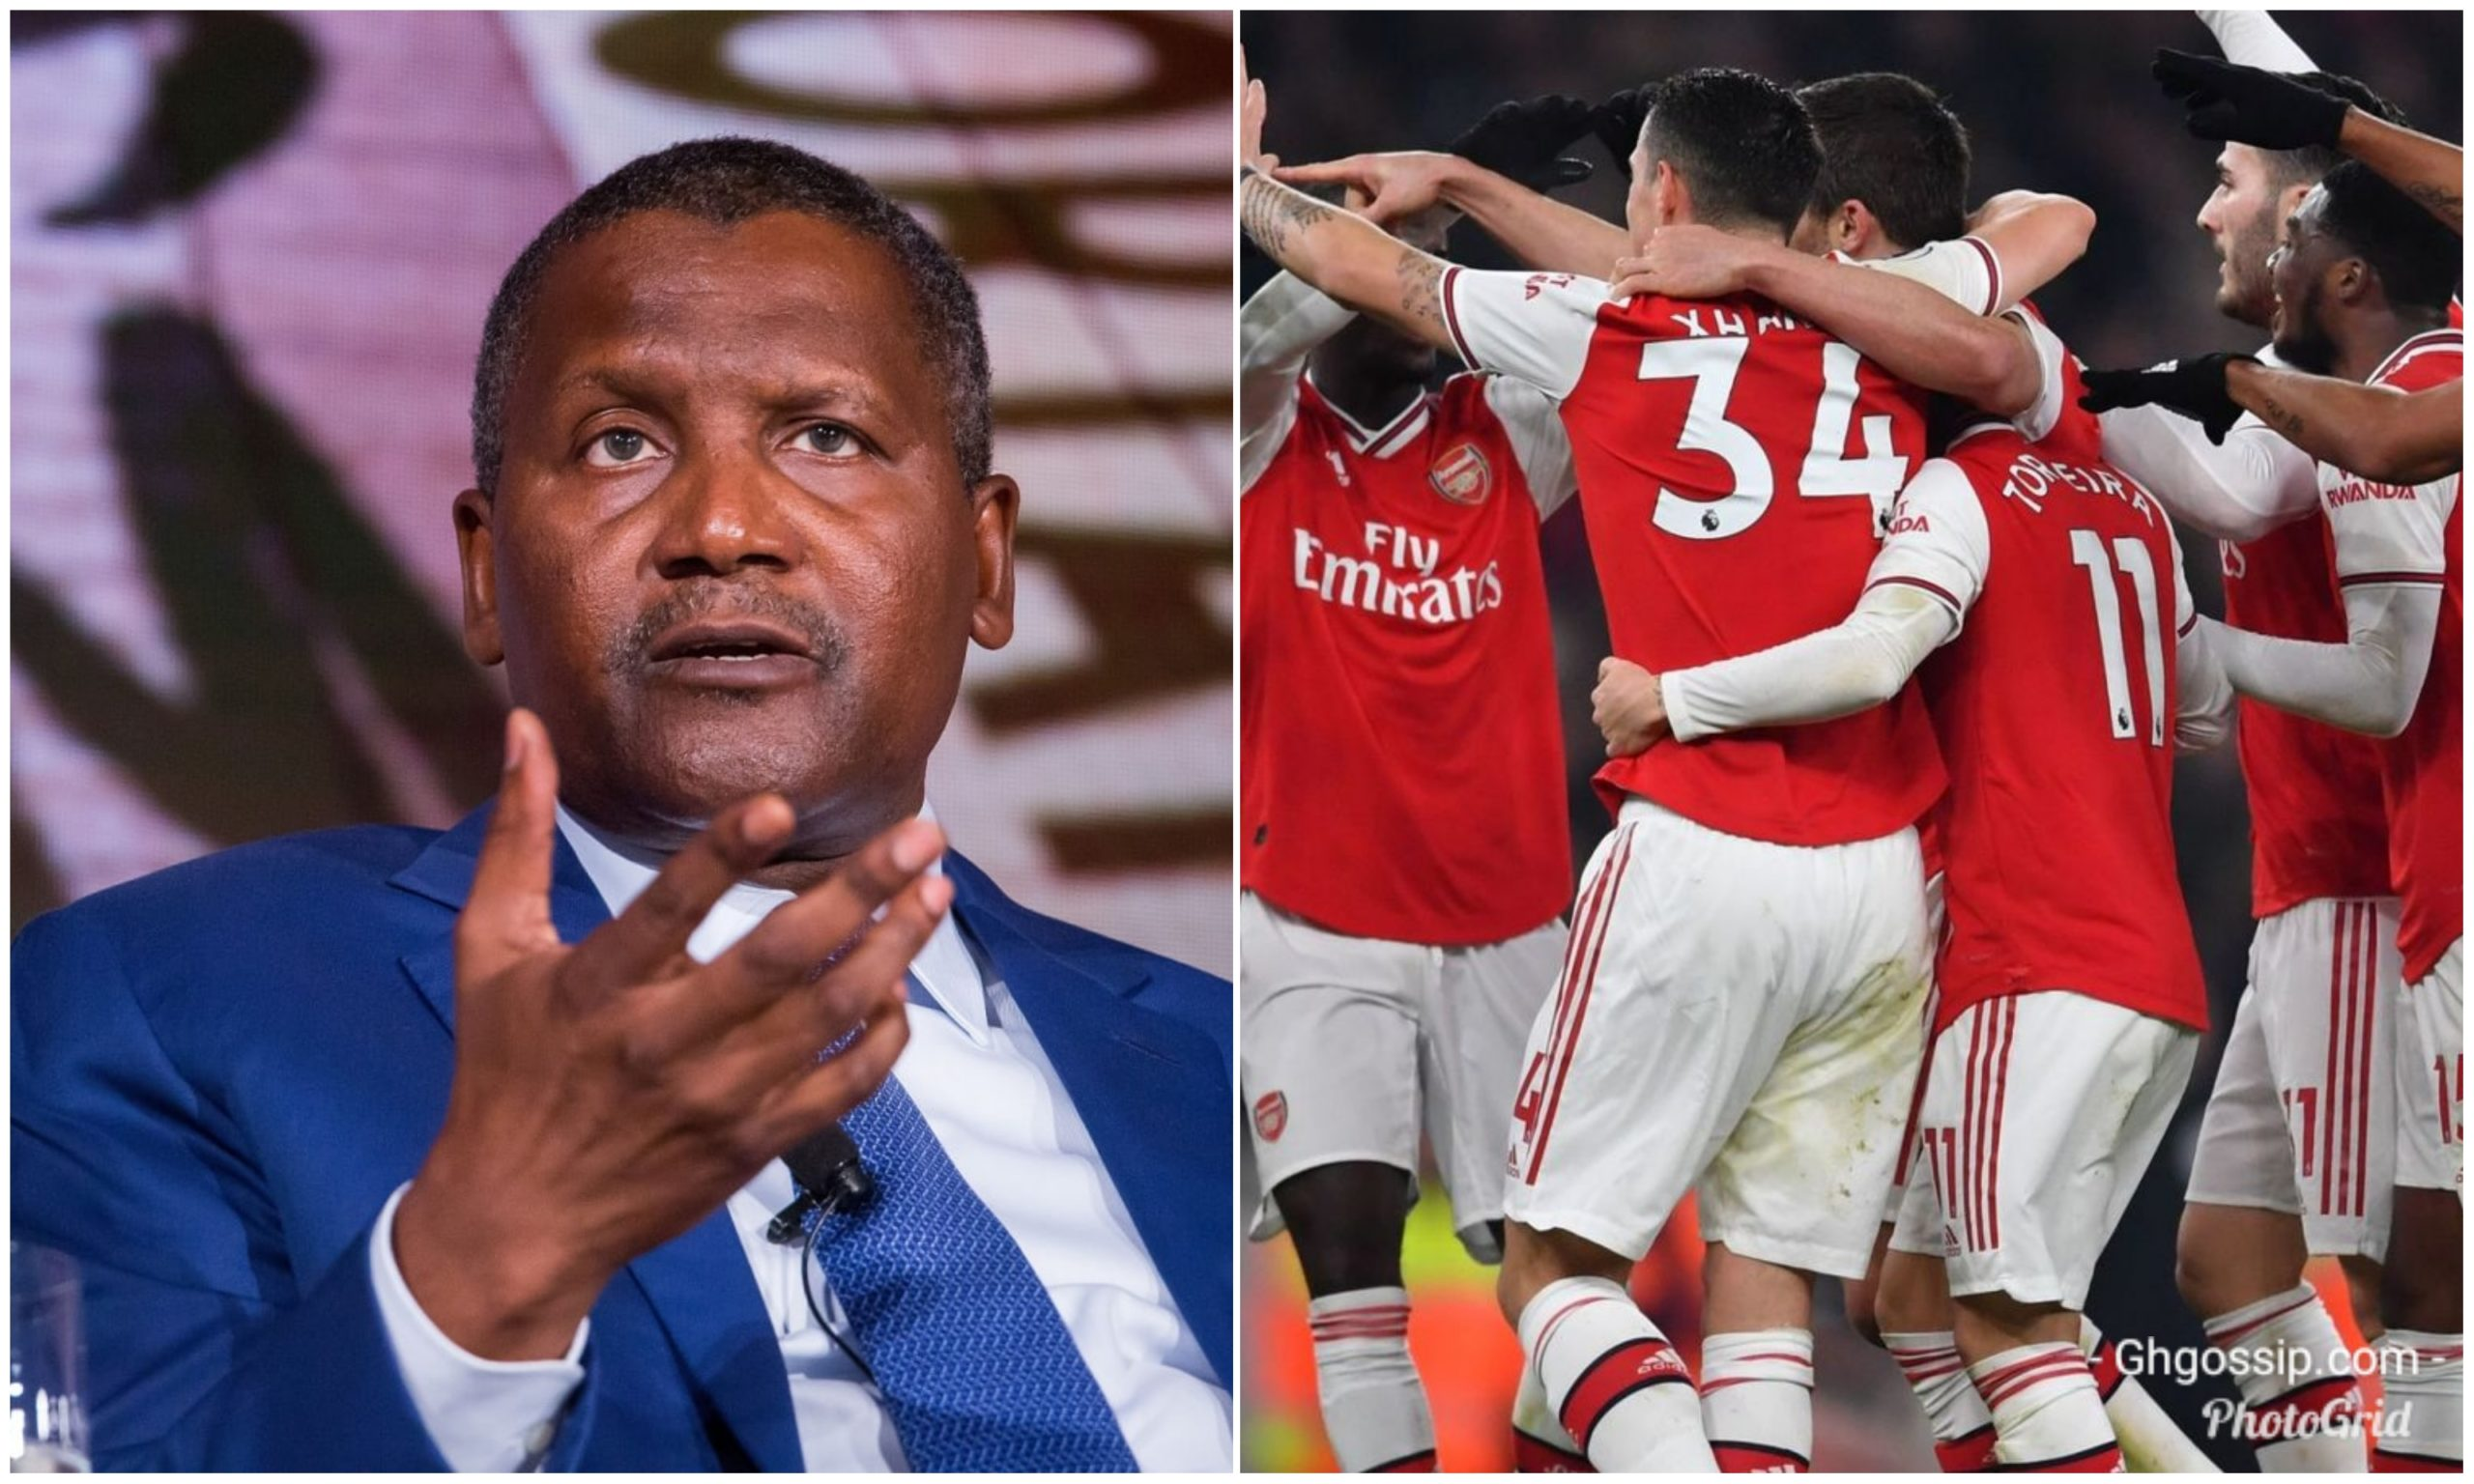 Aliko Dangote Set To Purchase Arsenal In 2021